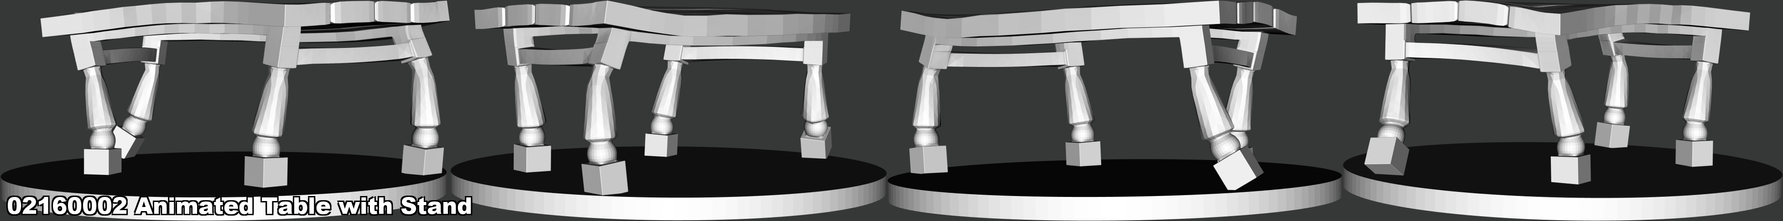 02160002 Animated Table with Stand.png